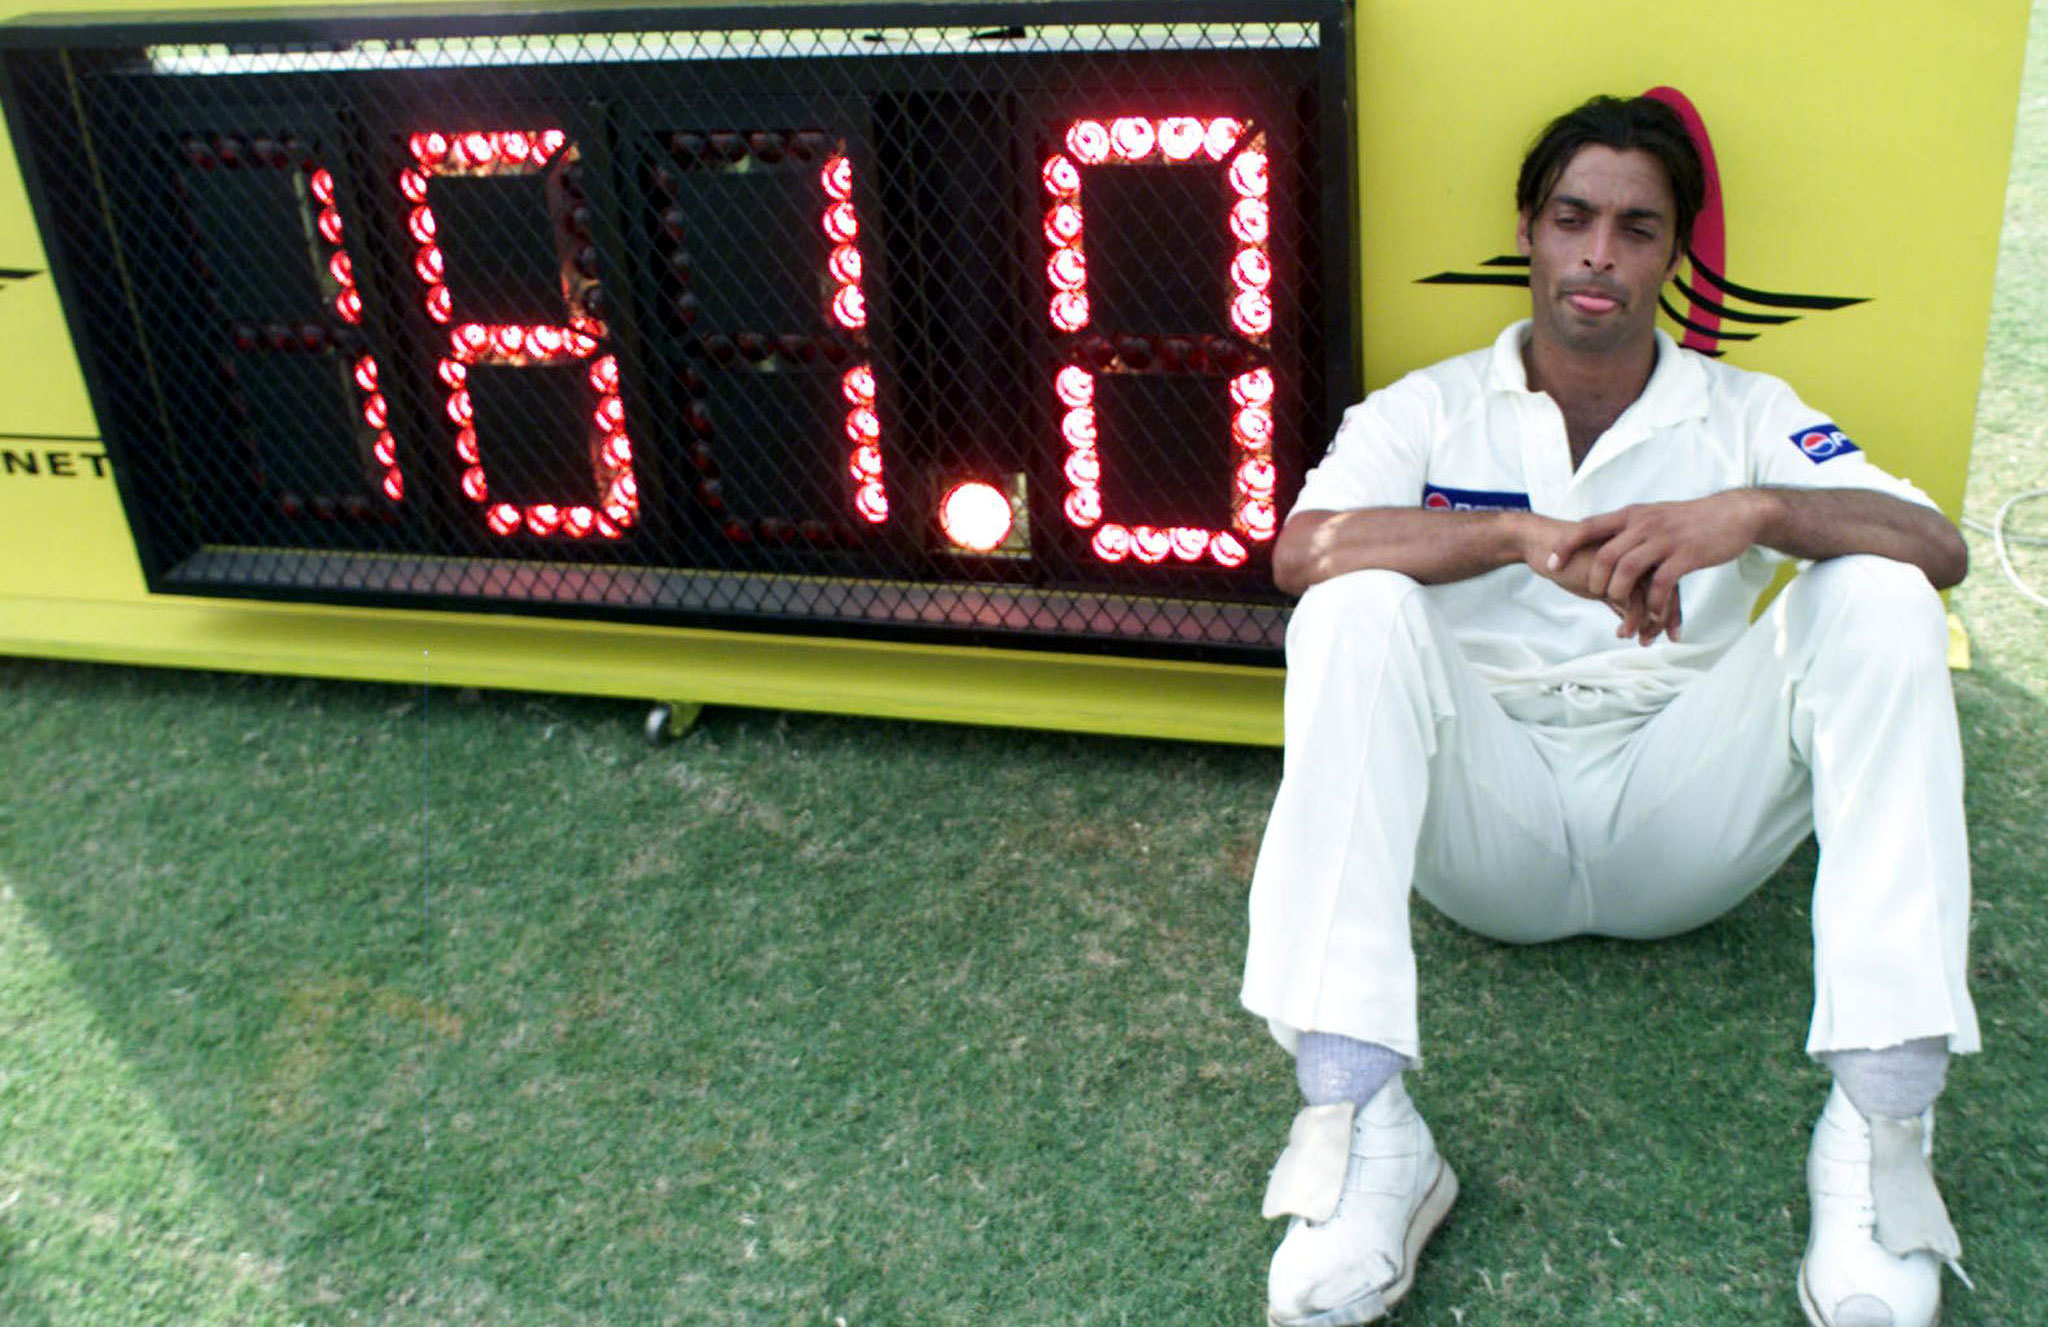 Shoaib Akthar reached bowling speeds never seen in 1999 // Getty Images